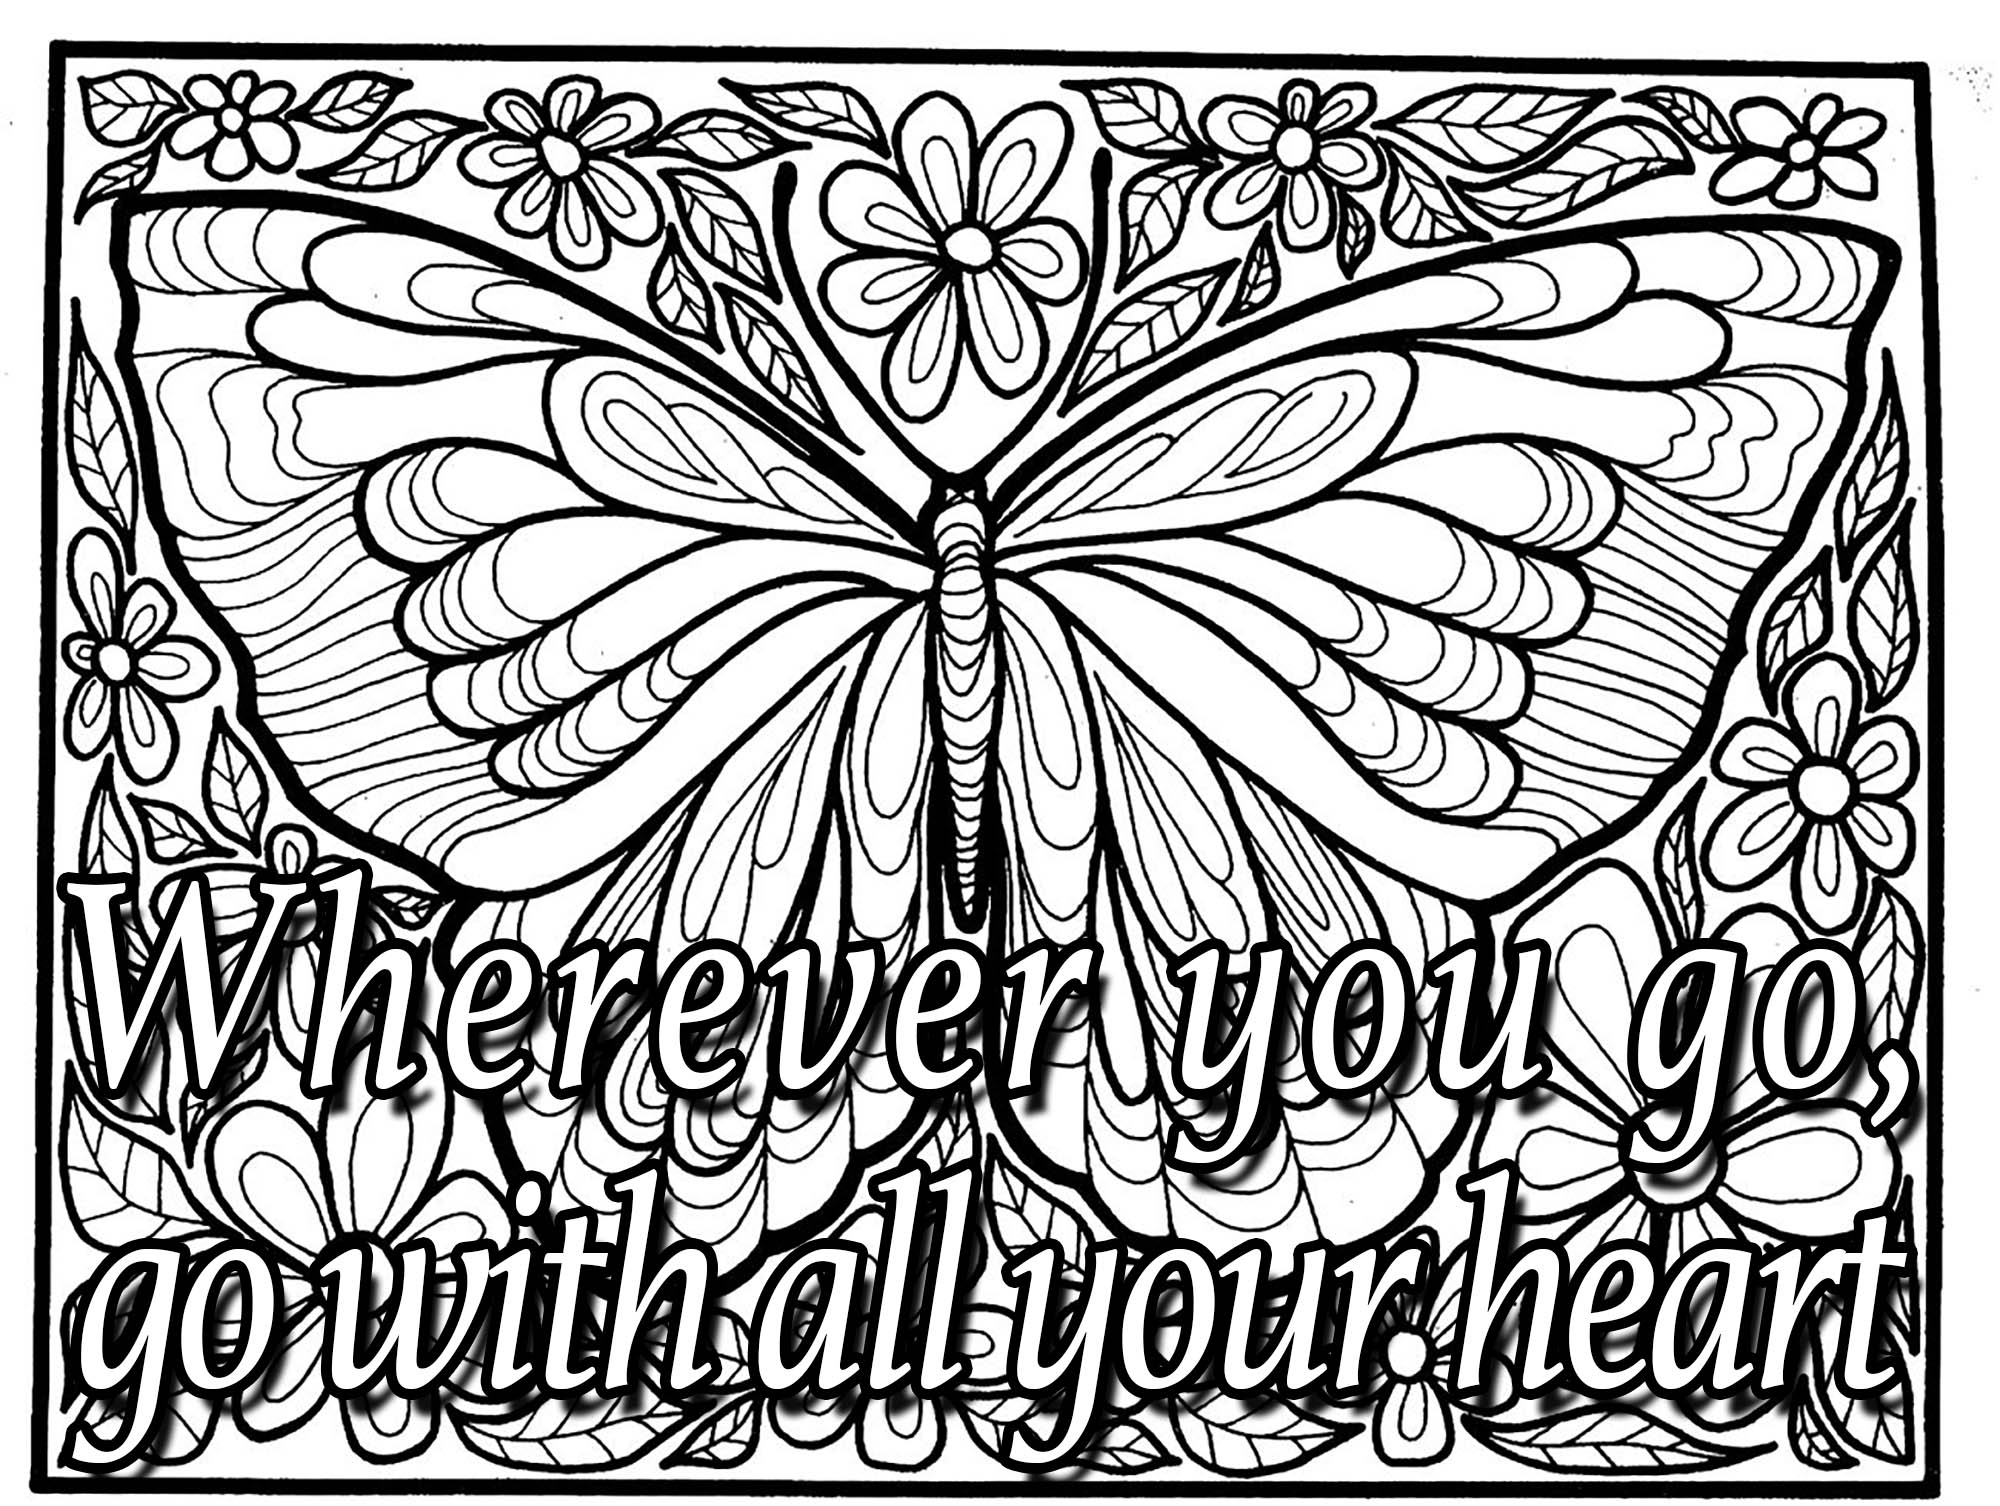 quote wherever you go quotes coloring pages coloring pages for